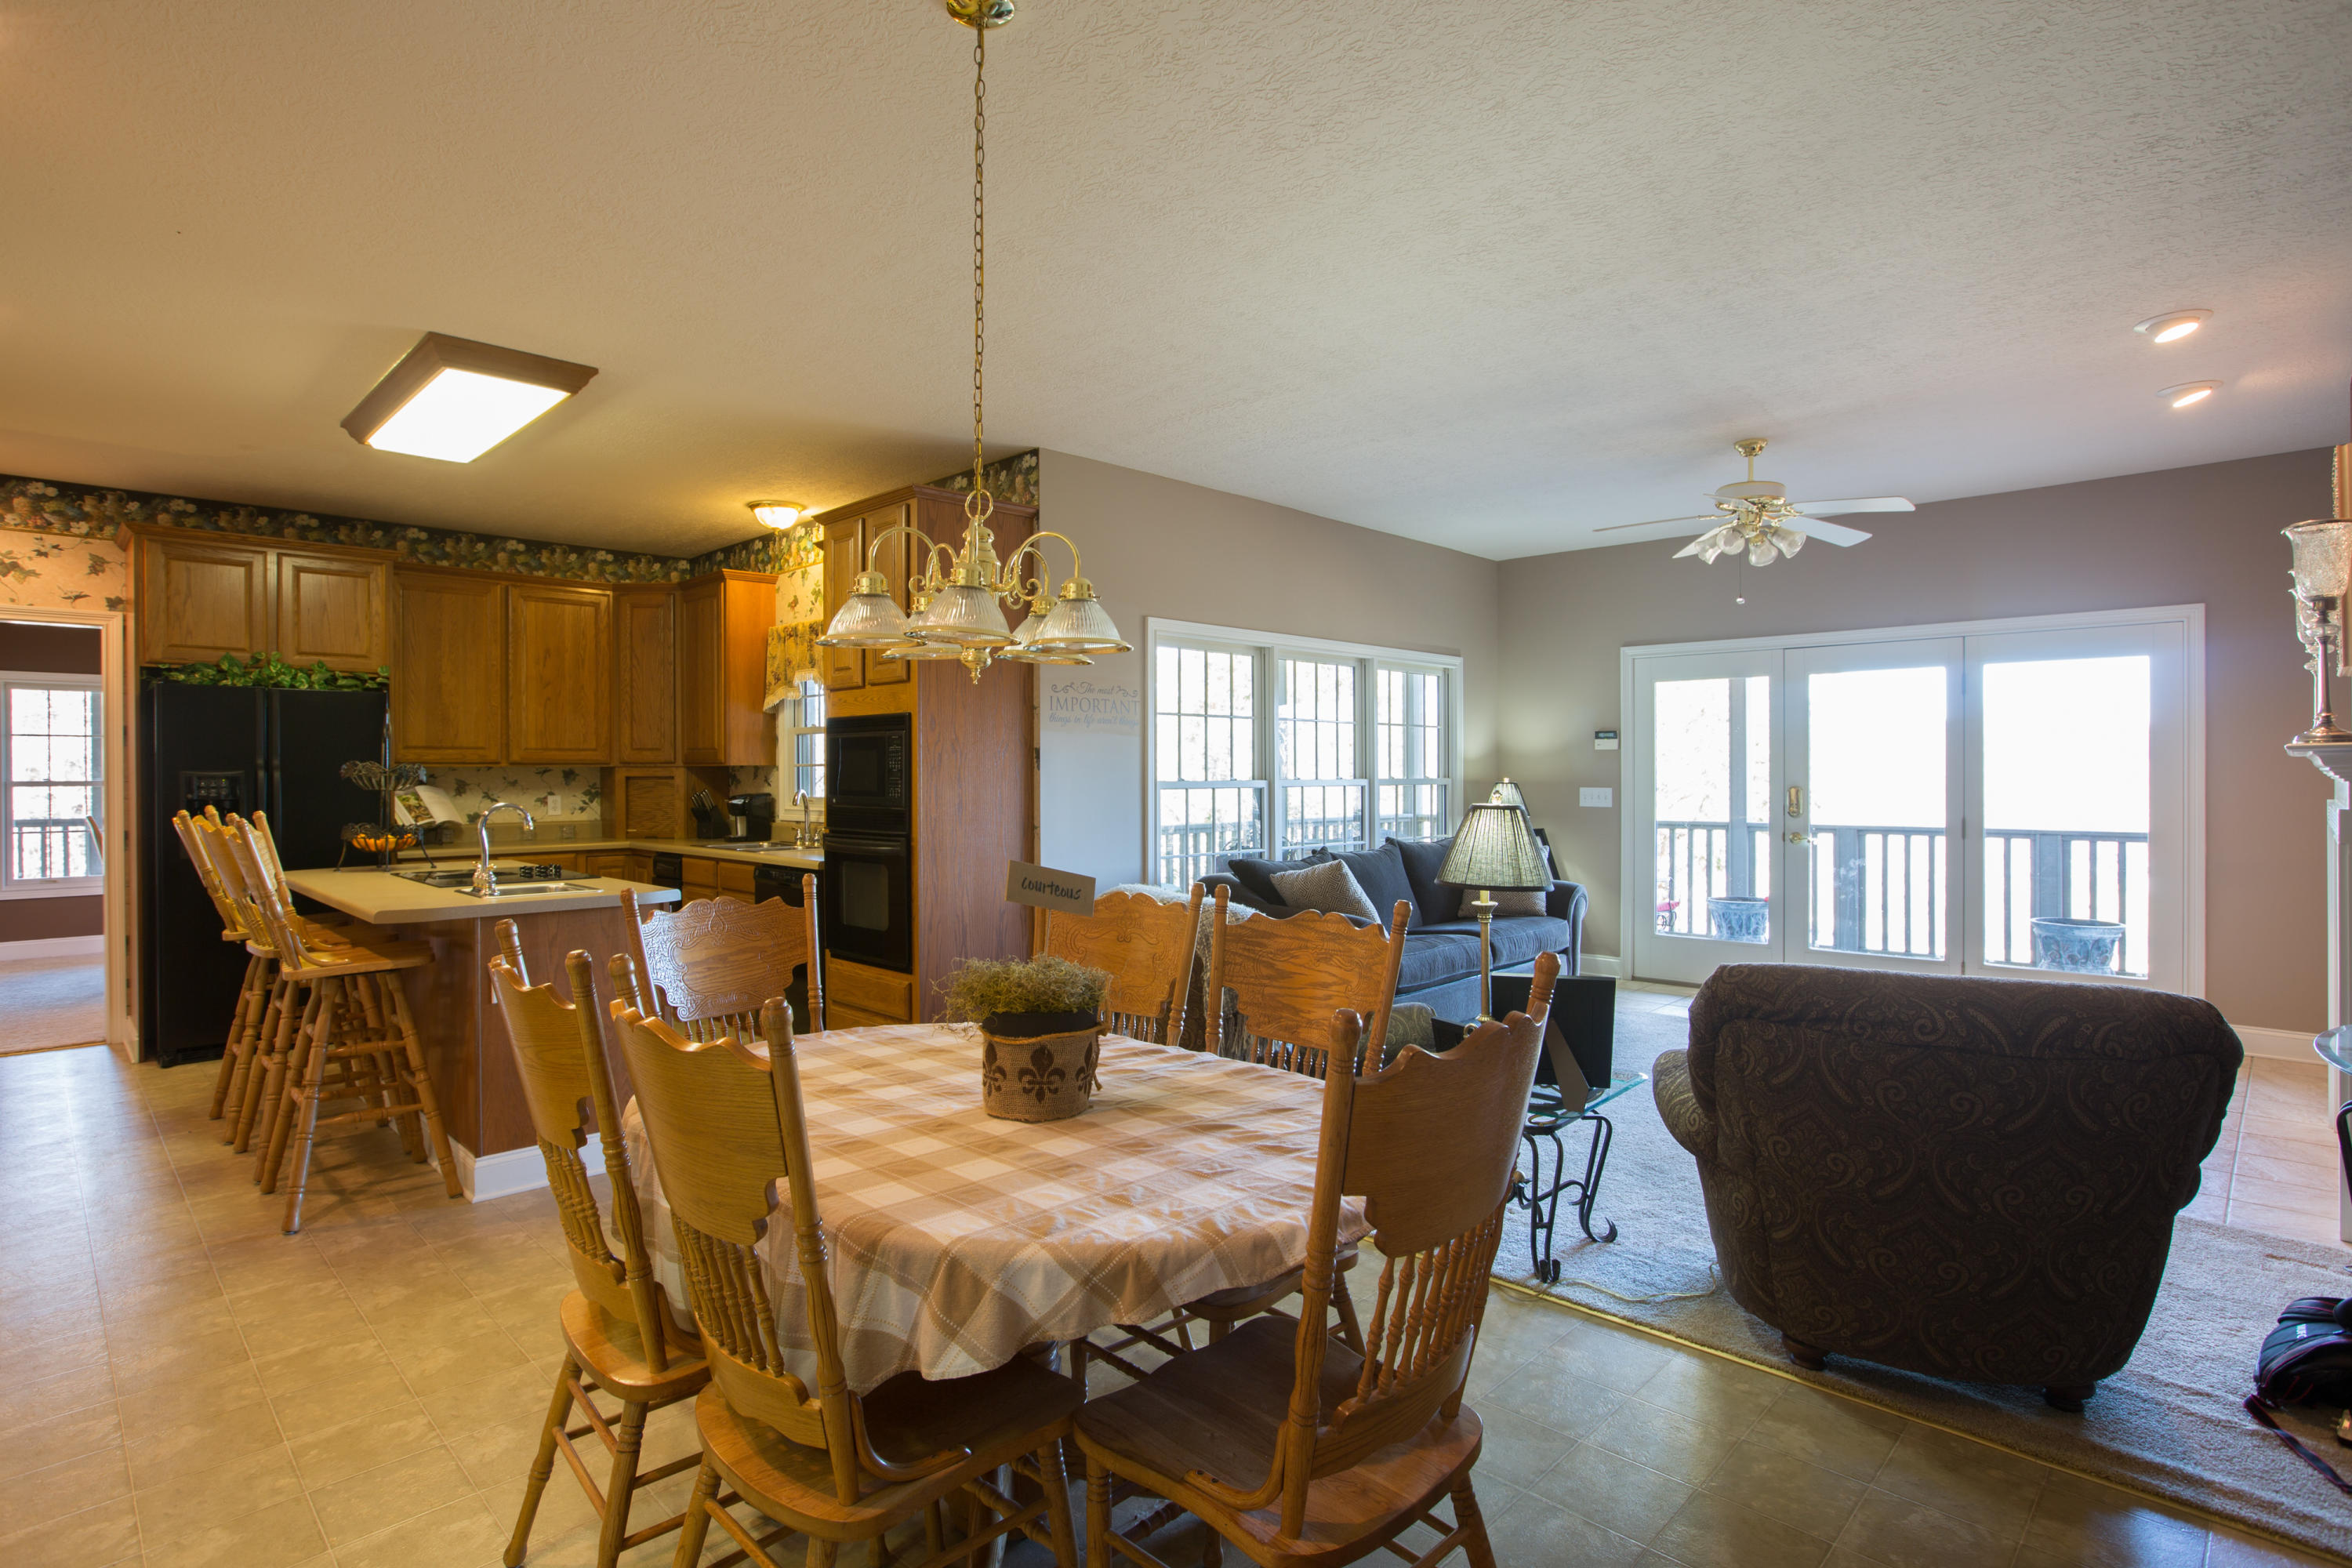 4626 French Rd: